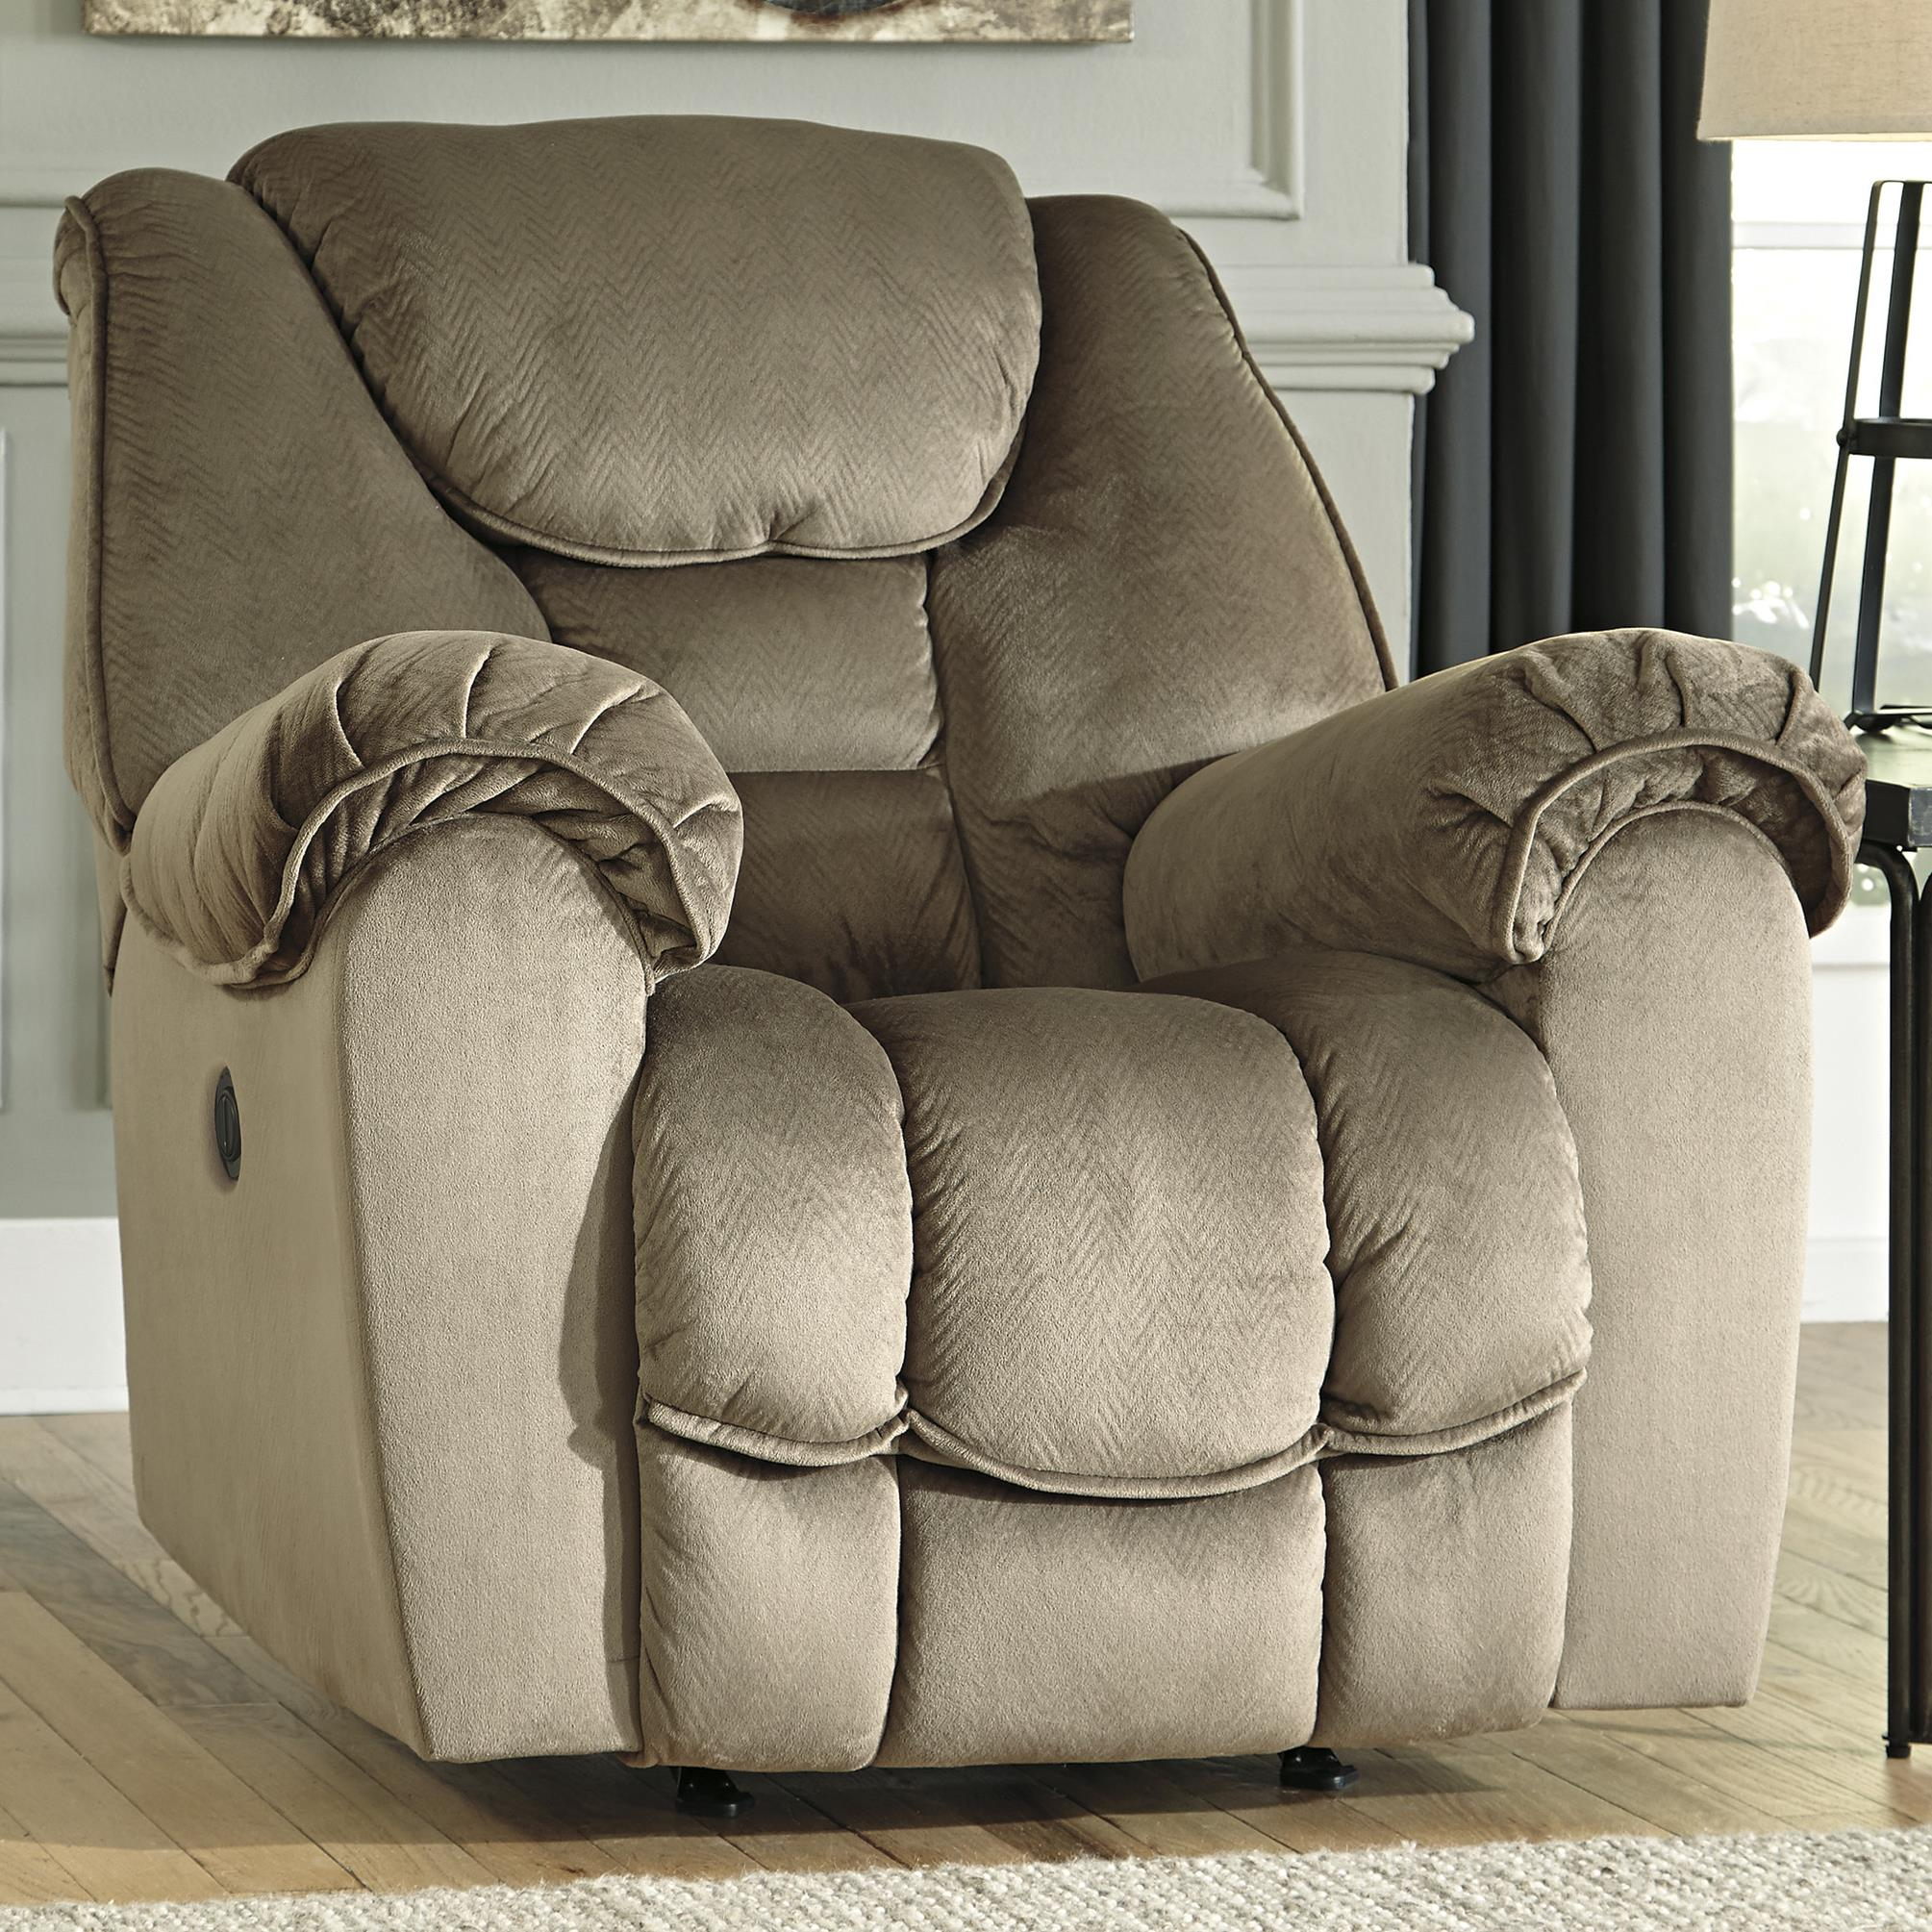 Benchcraft Jodoca Power Rocker Recliner - Item Number: 3660198